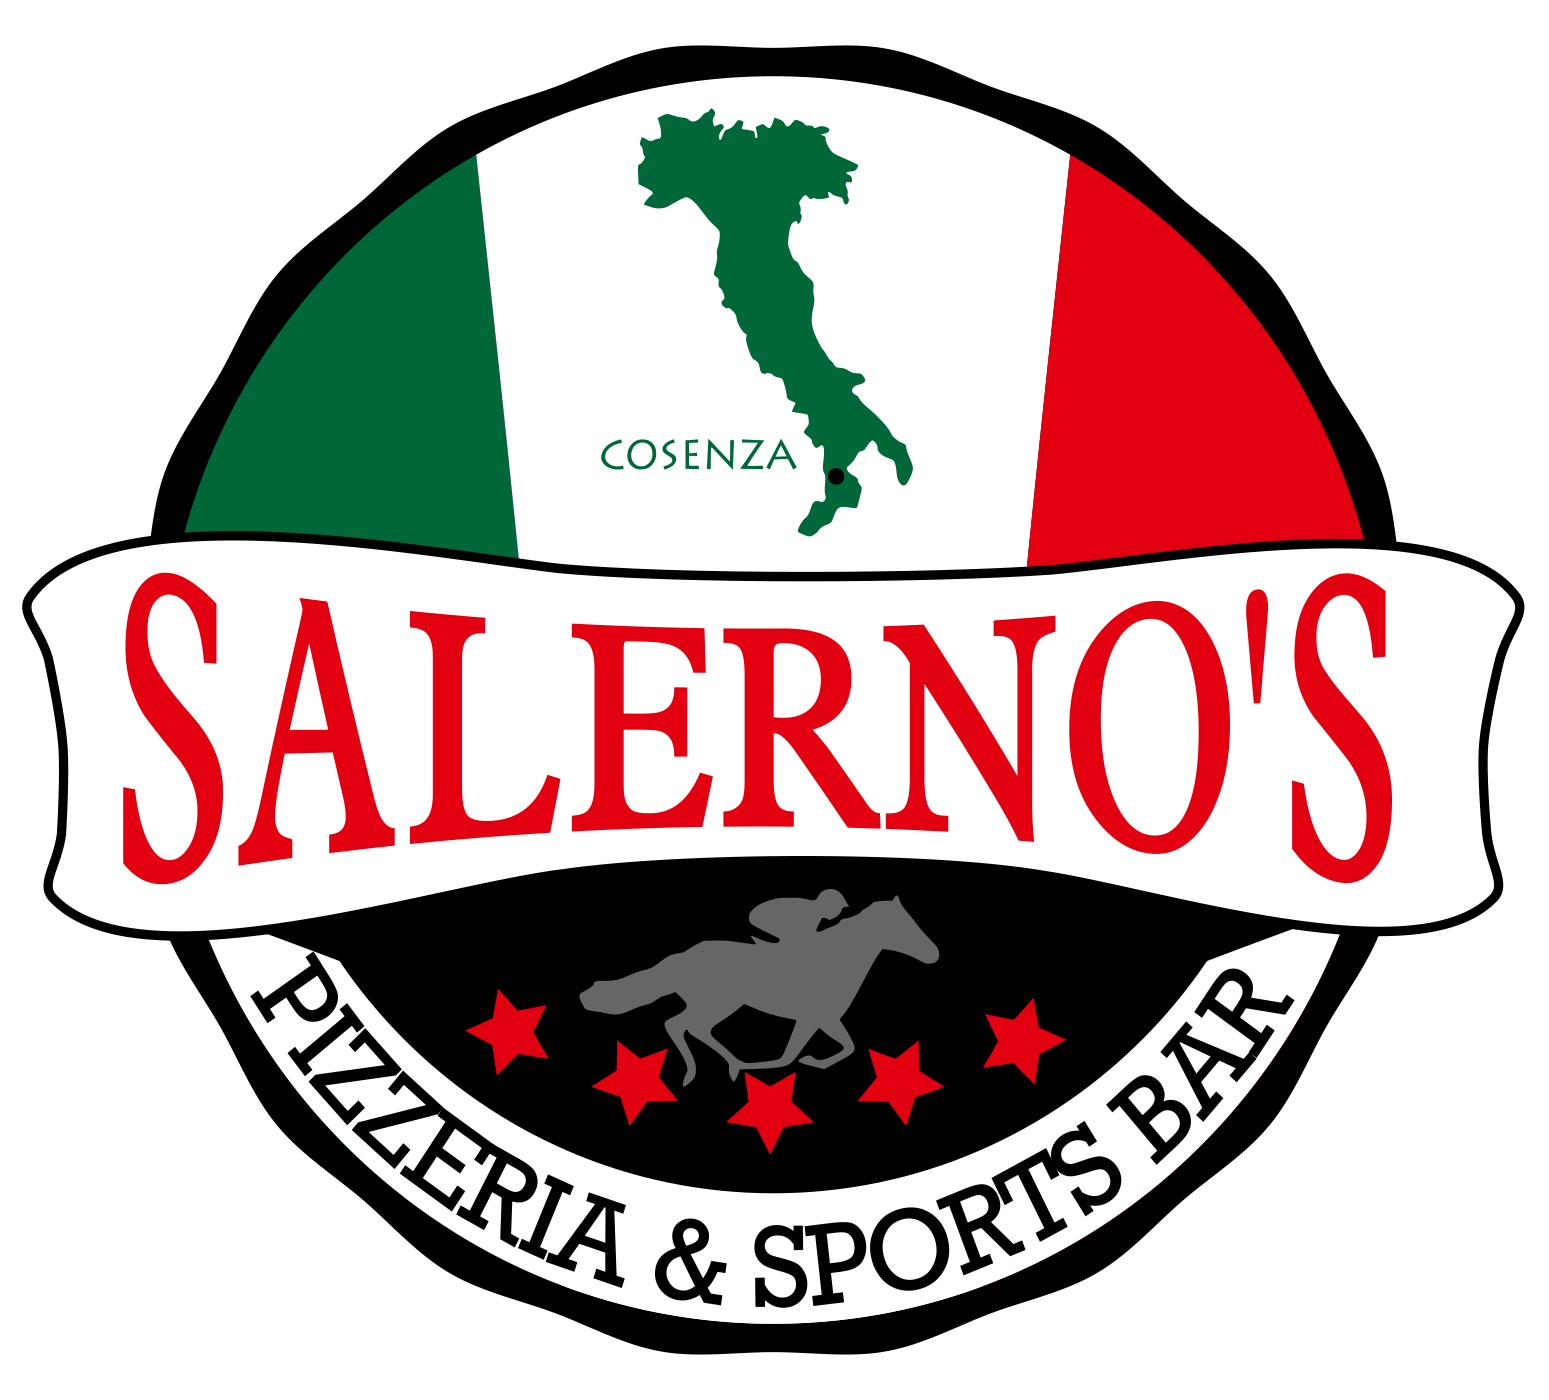 Salerno's pizzeria and sports bar